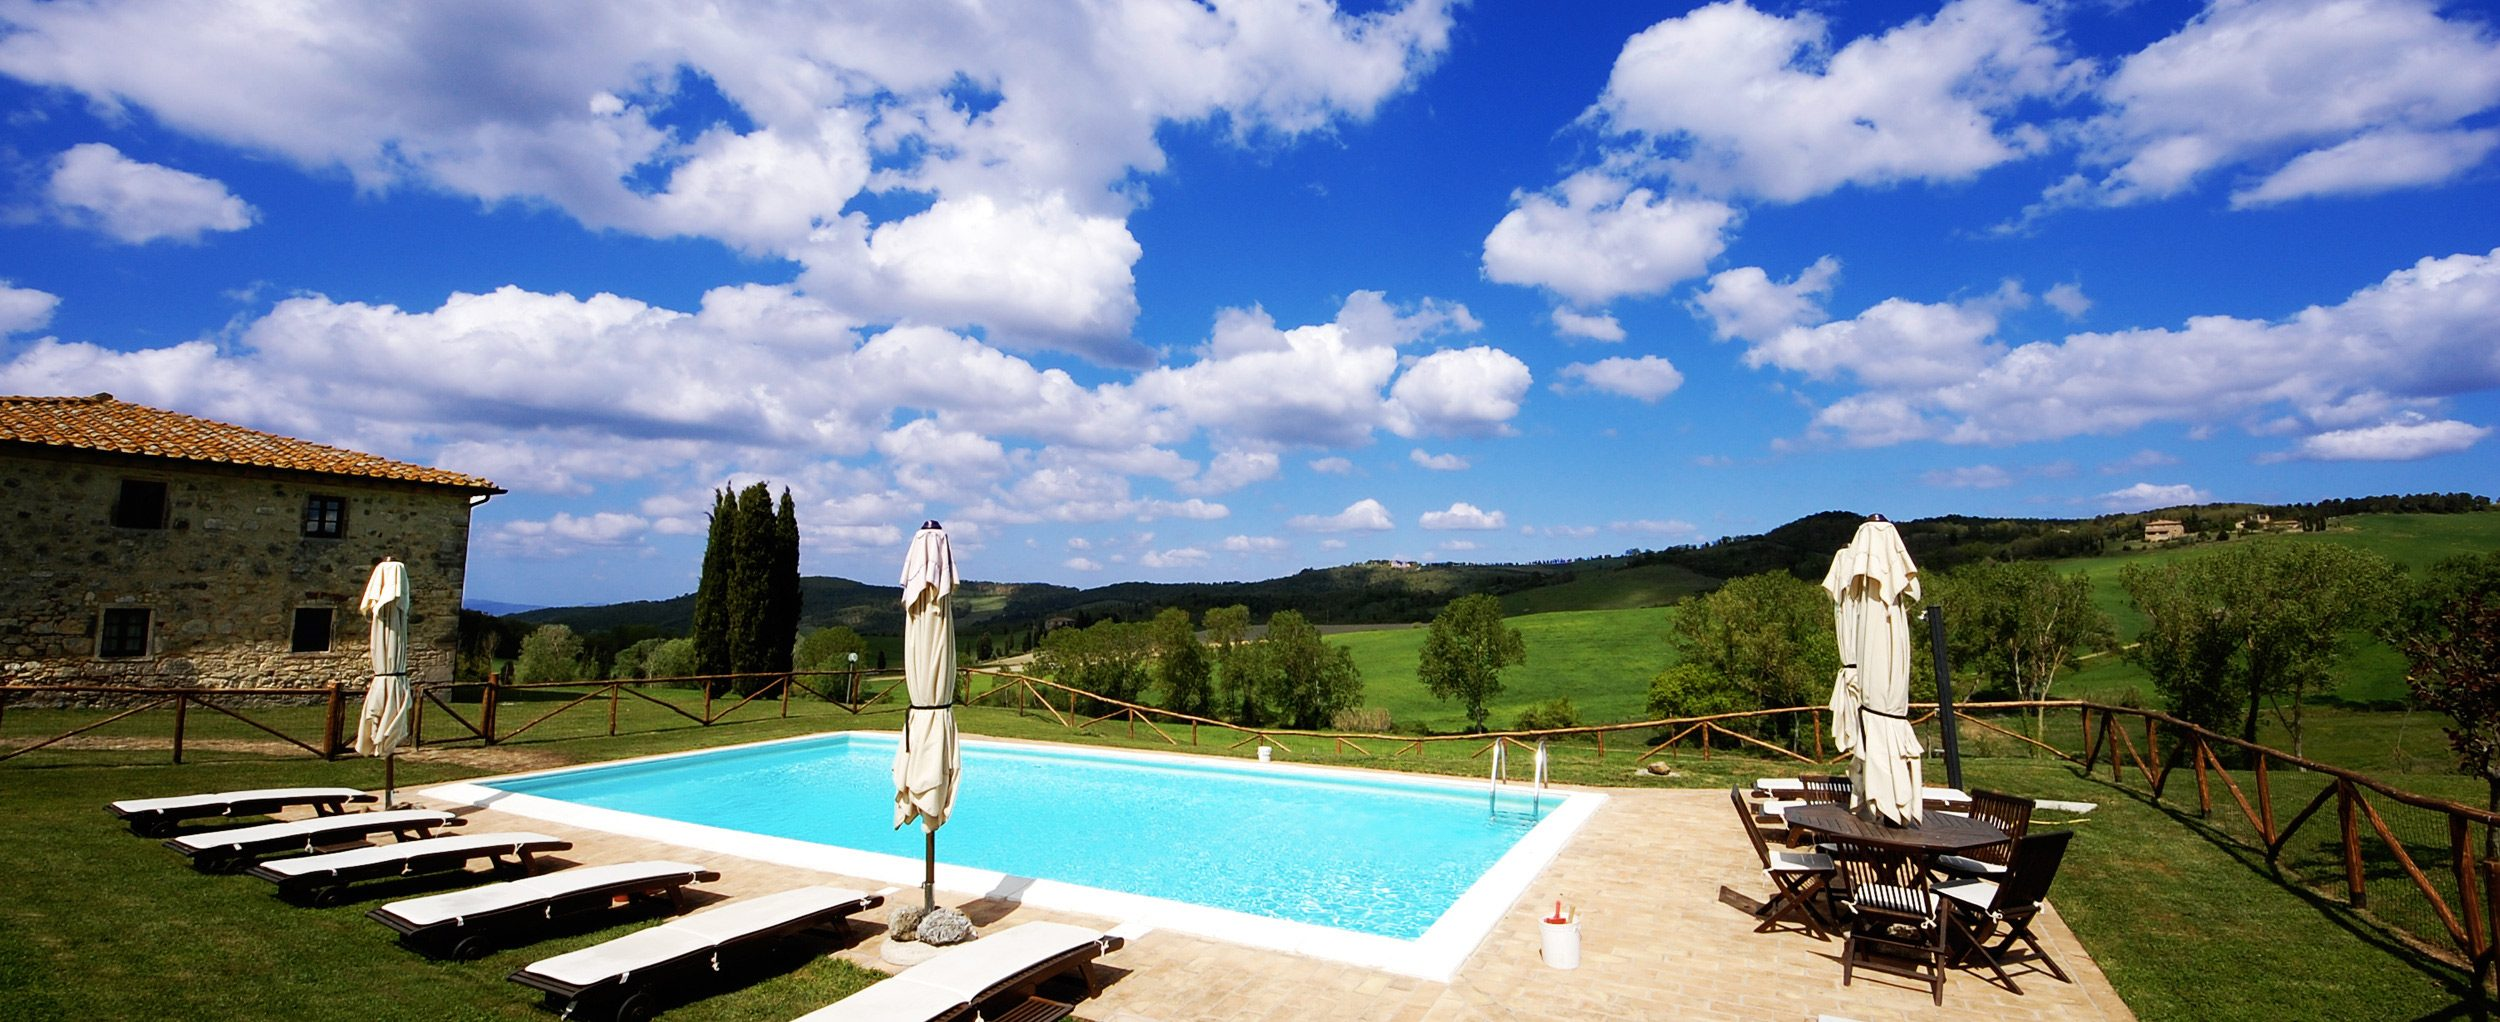 villa pool in tuscany